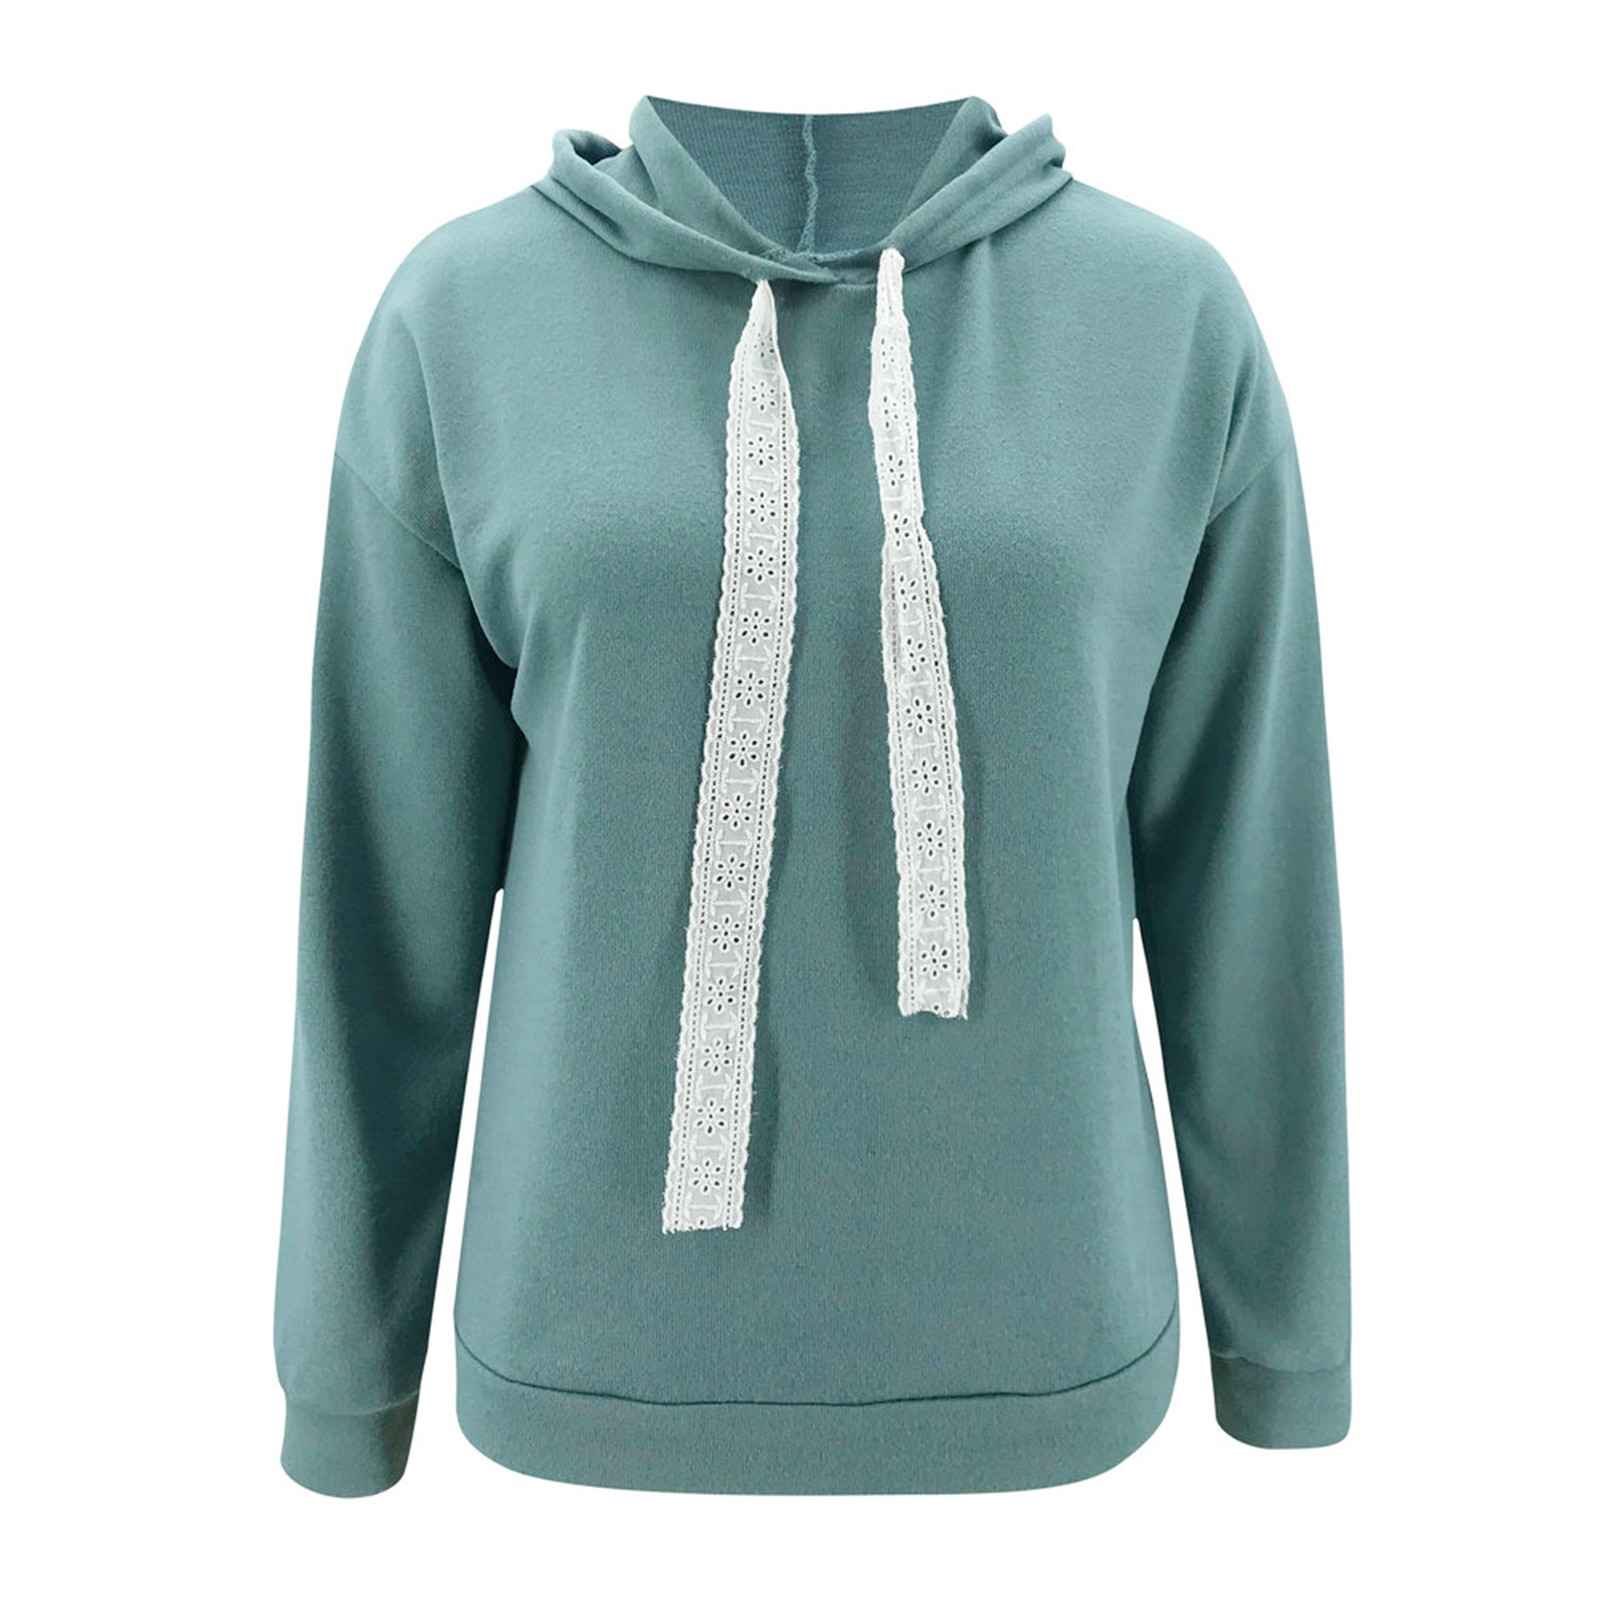 Women Casual Loose Hoodies, Long Sleeve Winter Warm Solid Color Sweatshirts with Lace Drawstrings